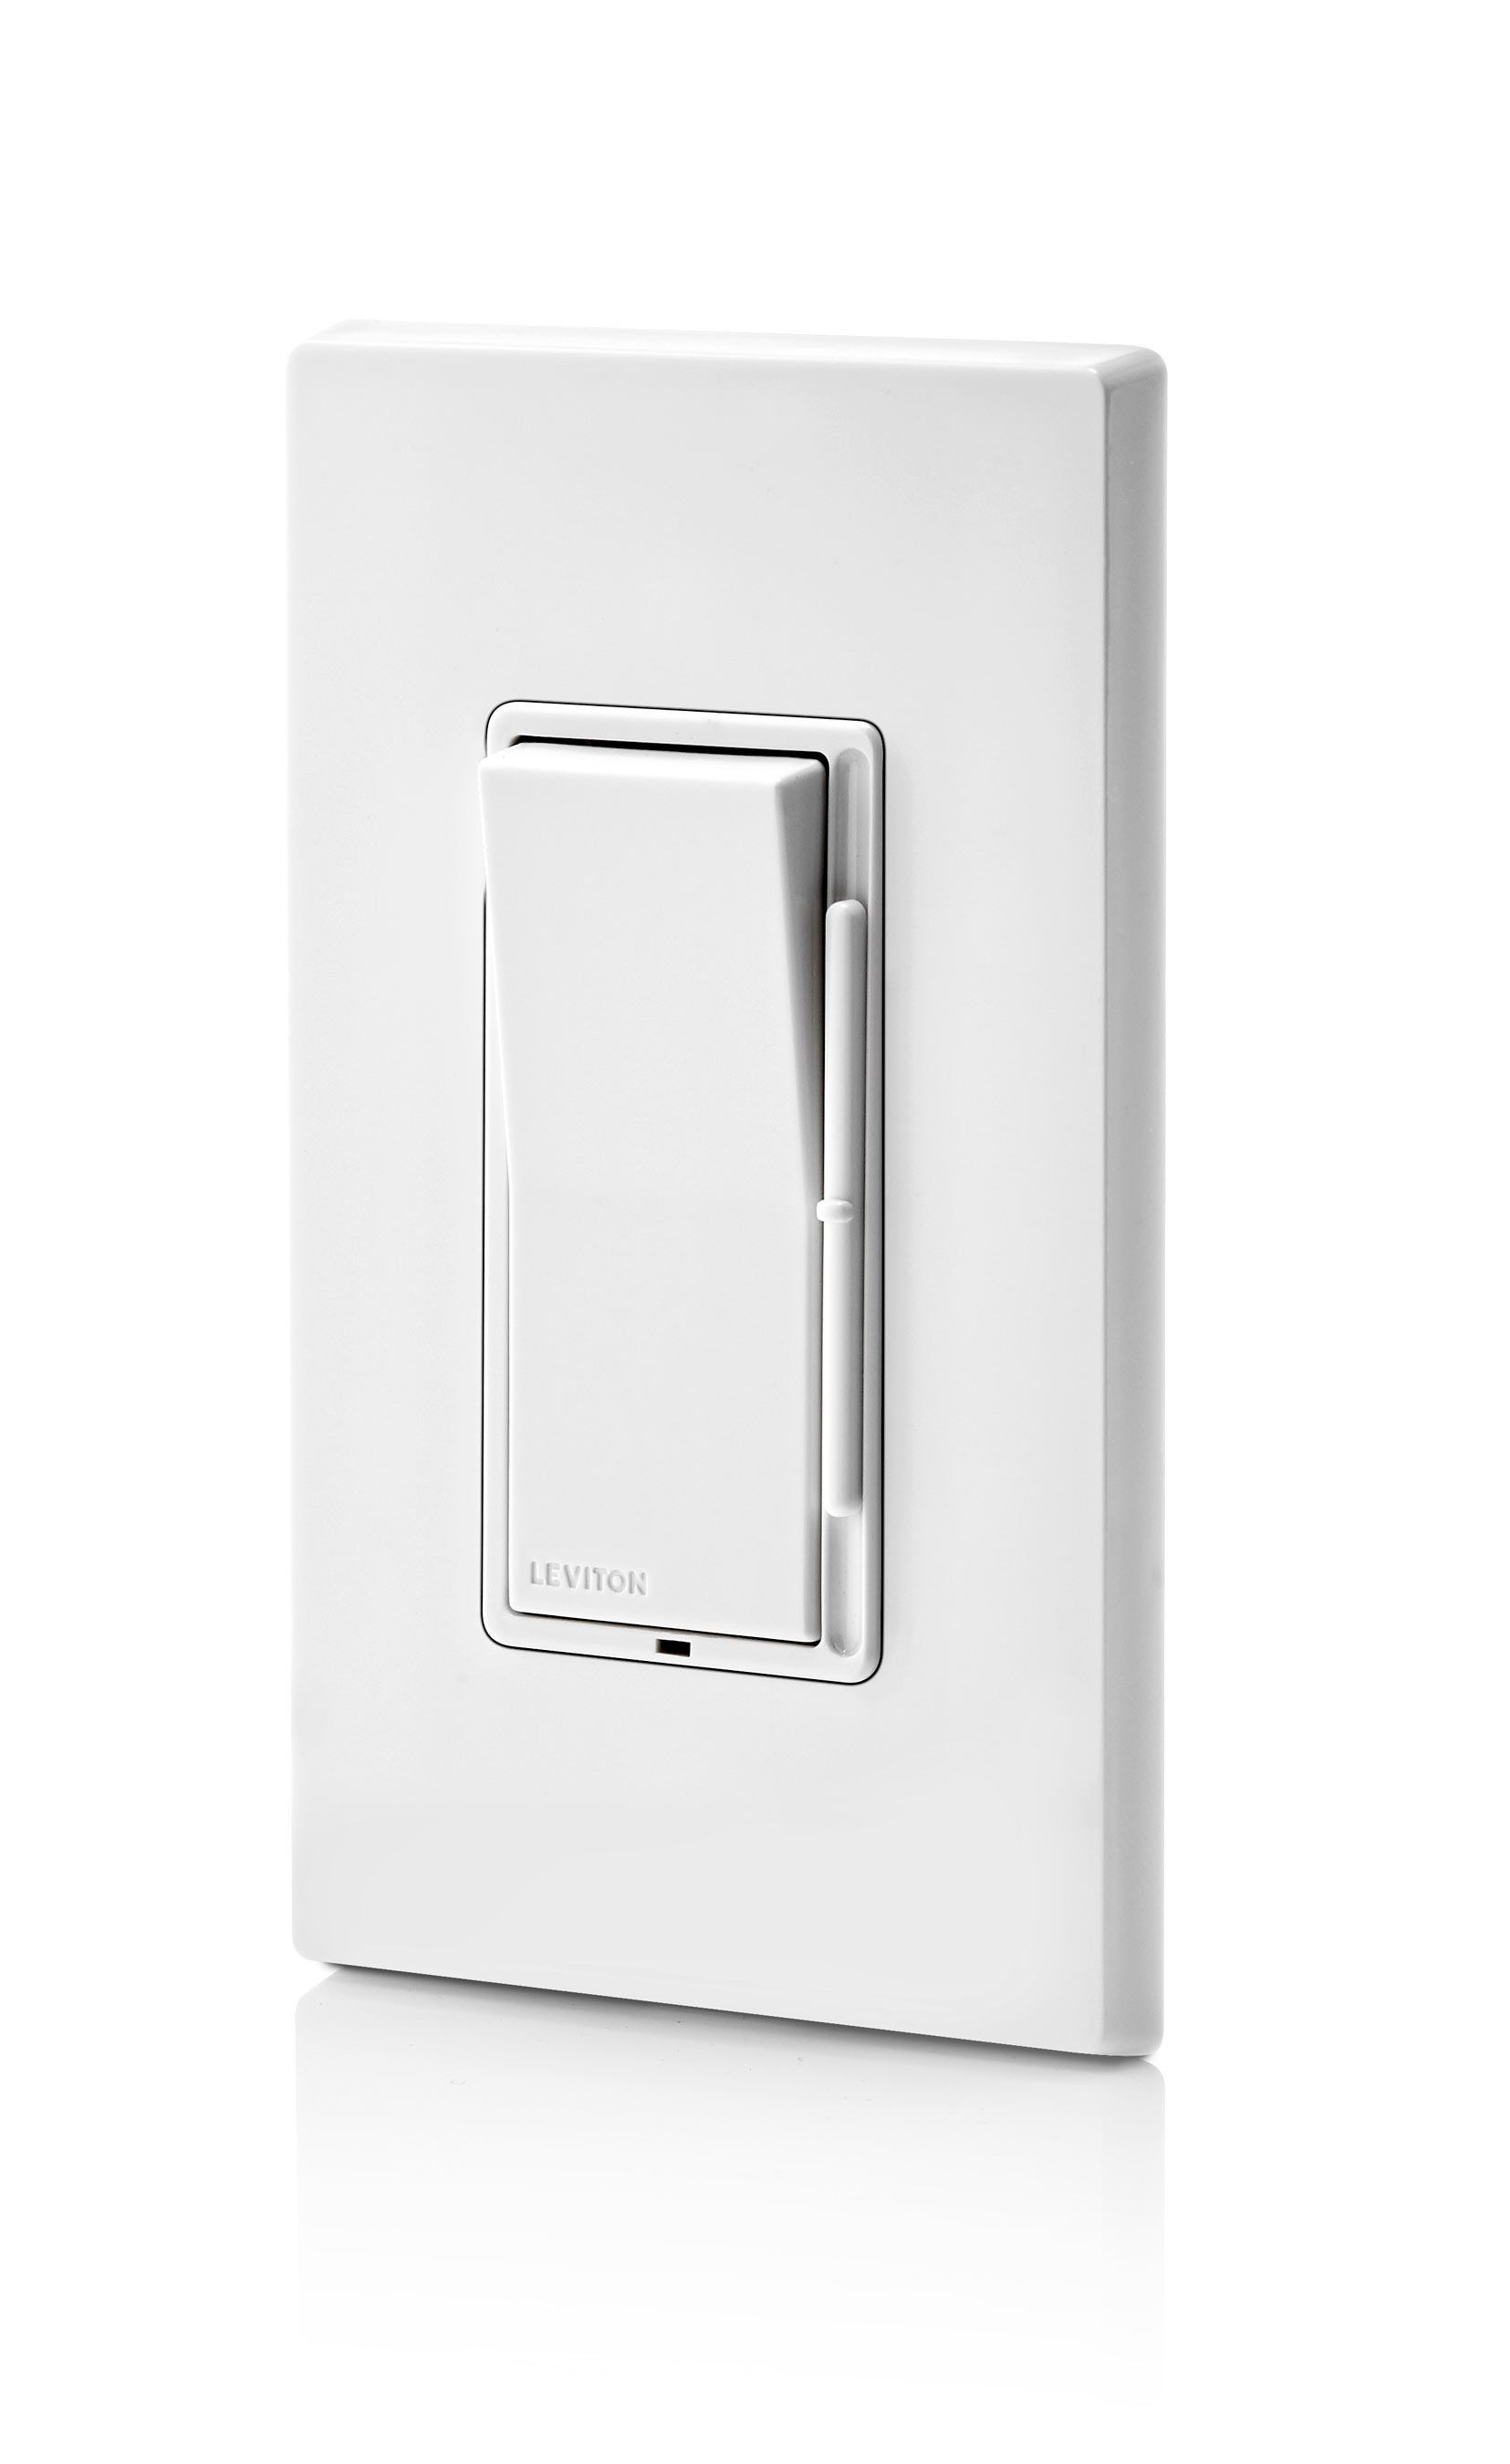 Leviton Expands Decora U00ae Product Offering With Rocker Slide Controls